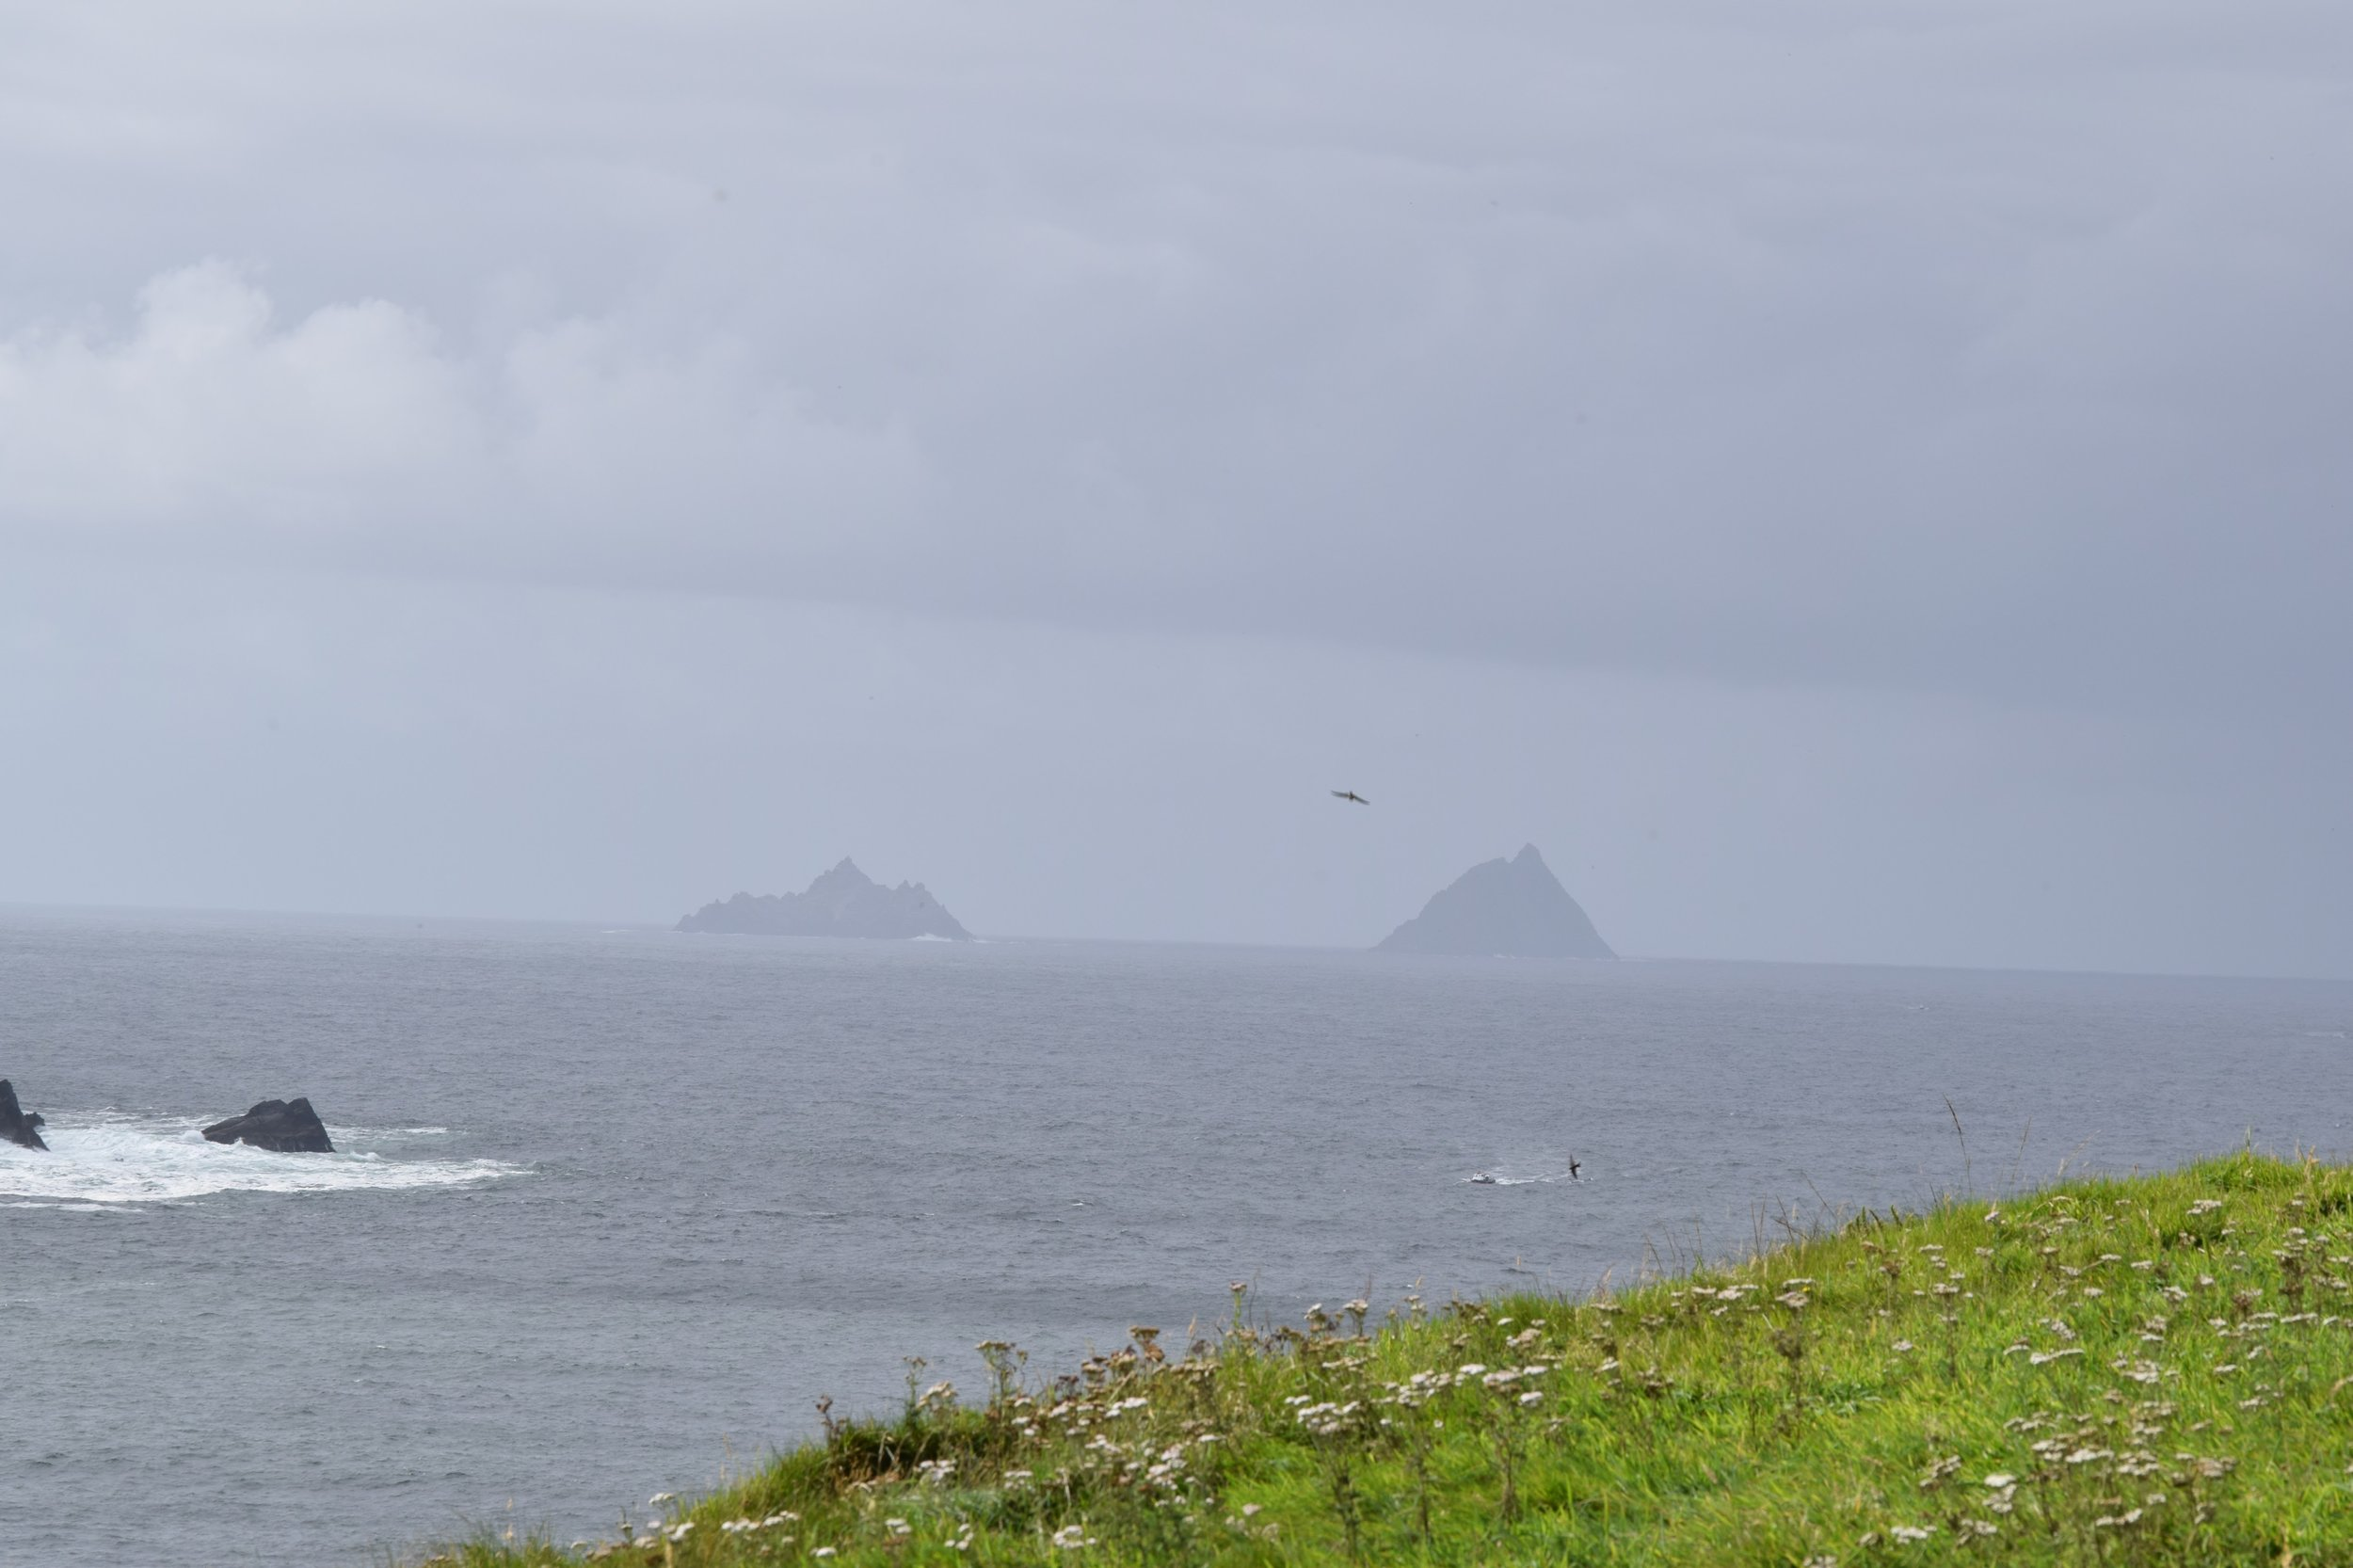 Skellig Islands in the distance- we plan to come back and see them by boat someday!